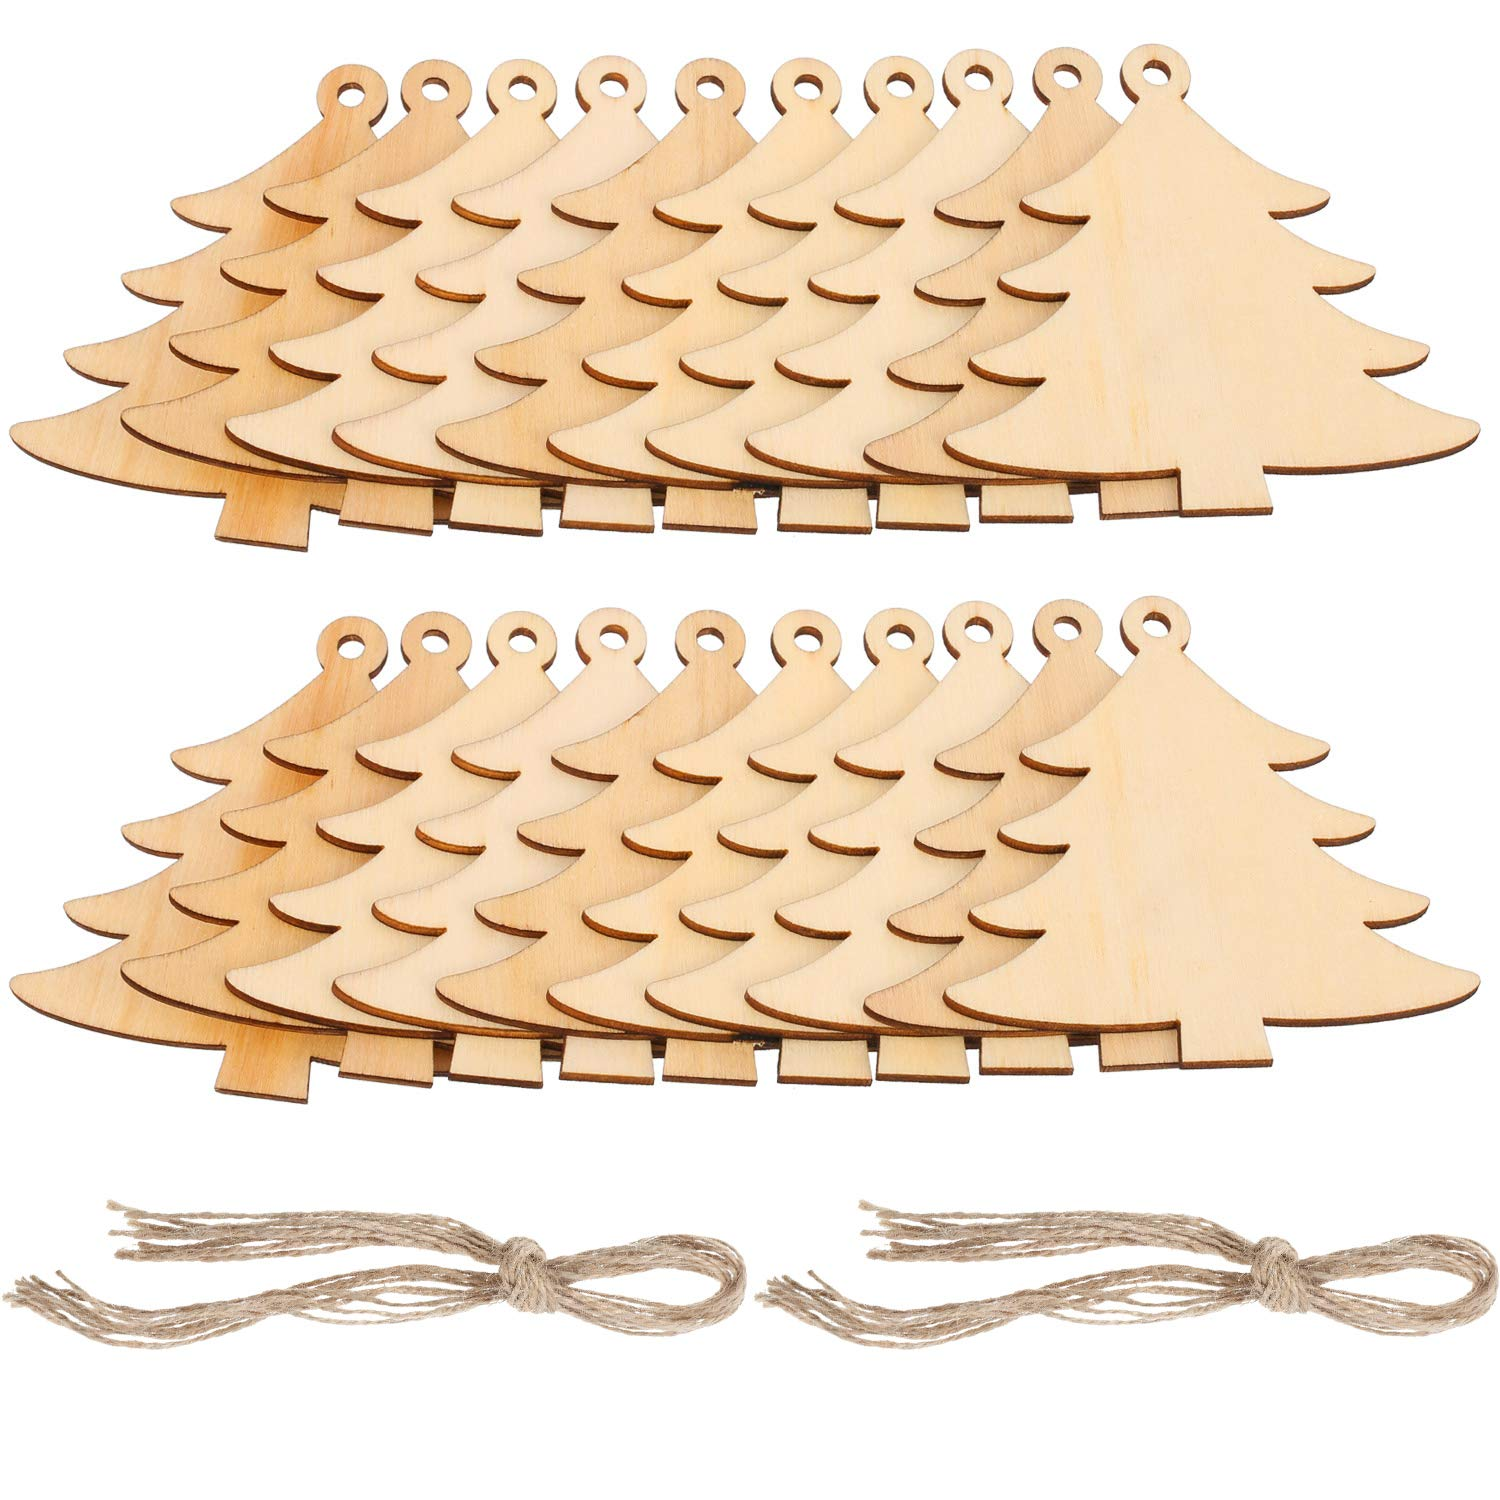 Pangda 20 Packs Wooden Christmas Tree Cutouts Embellishments Hanging Ornaments 20 Packs Strings Wedding, Craft, Christmas Decoration